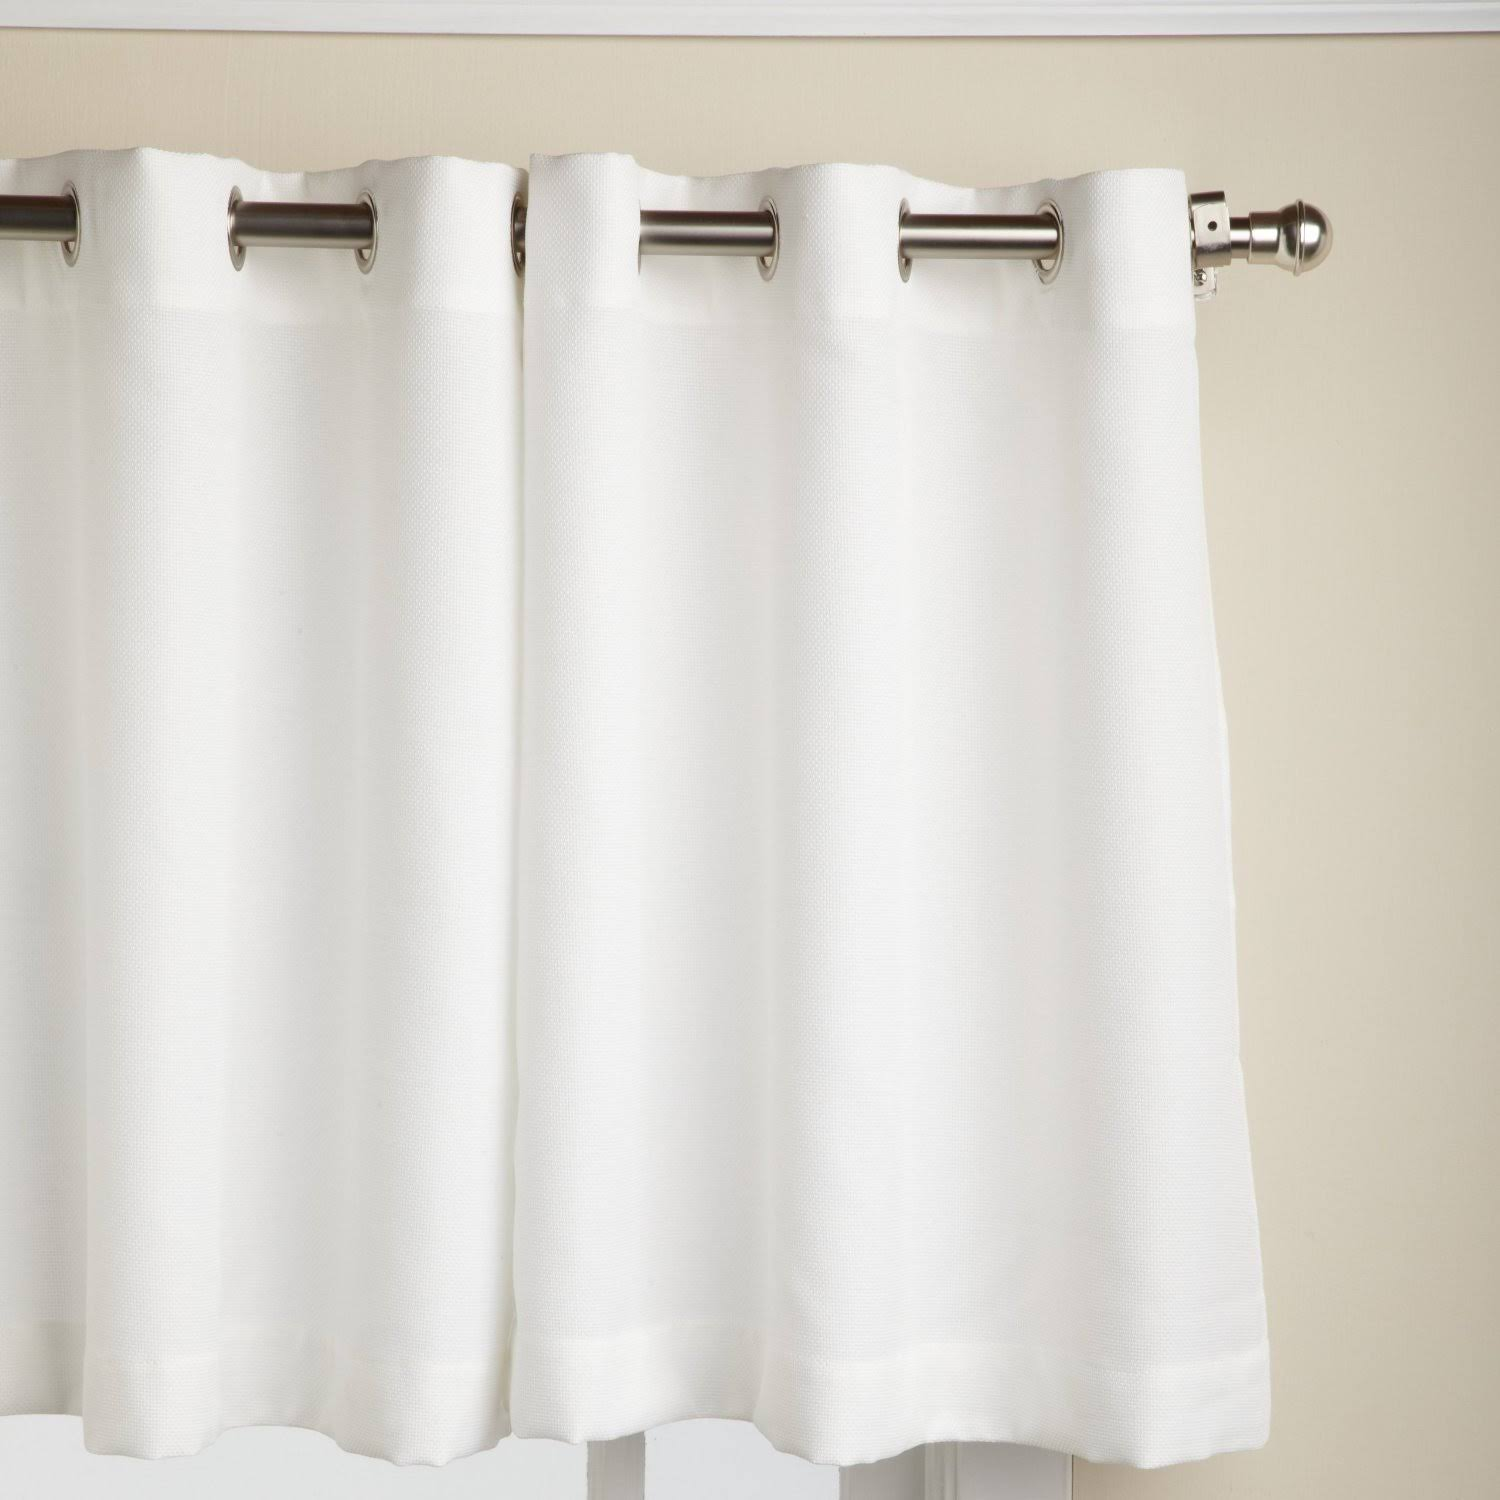 "Lorraine Home Jackson Kitchen Curtain: 36"" Tier Pair White"